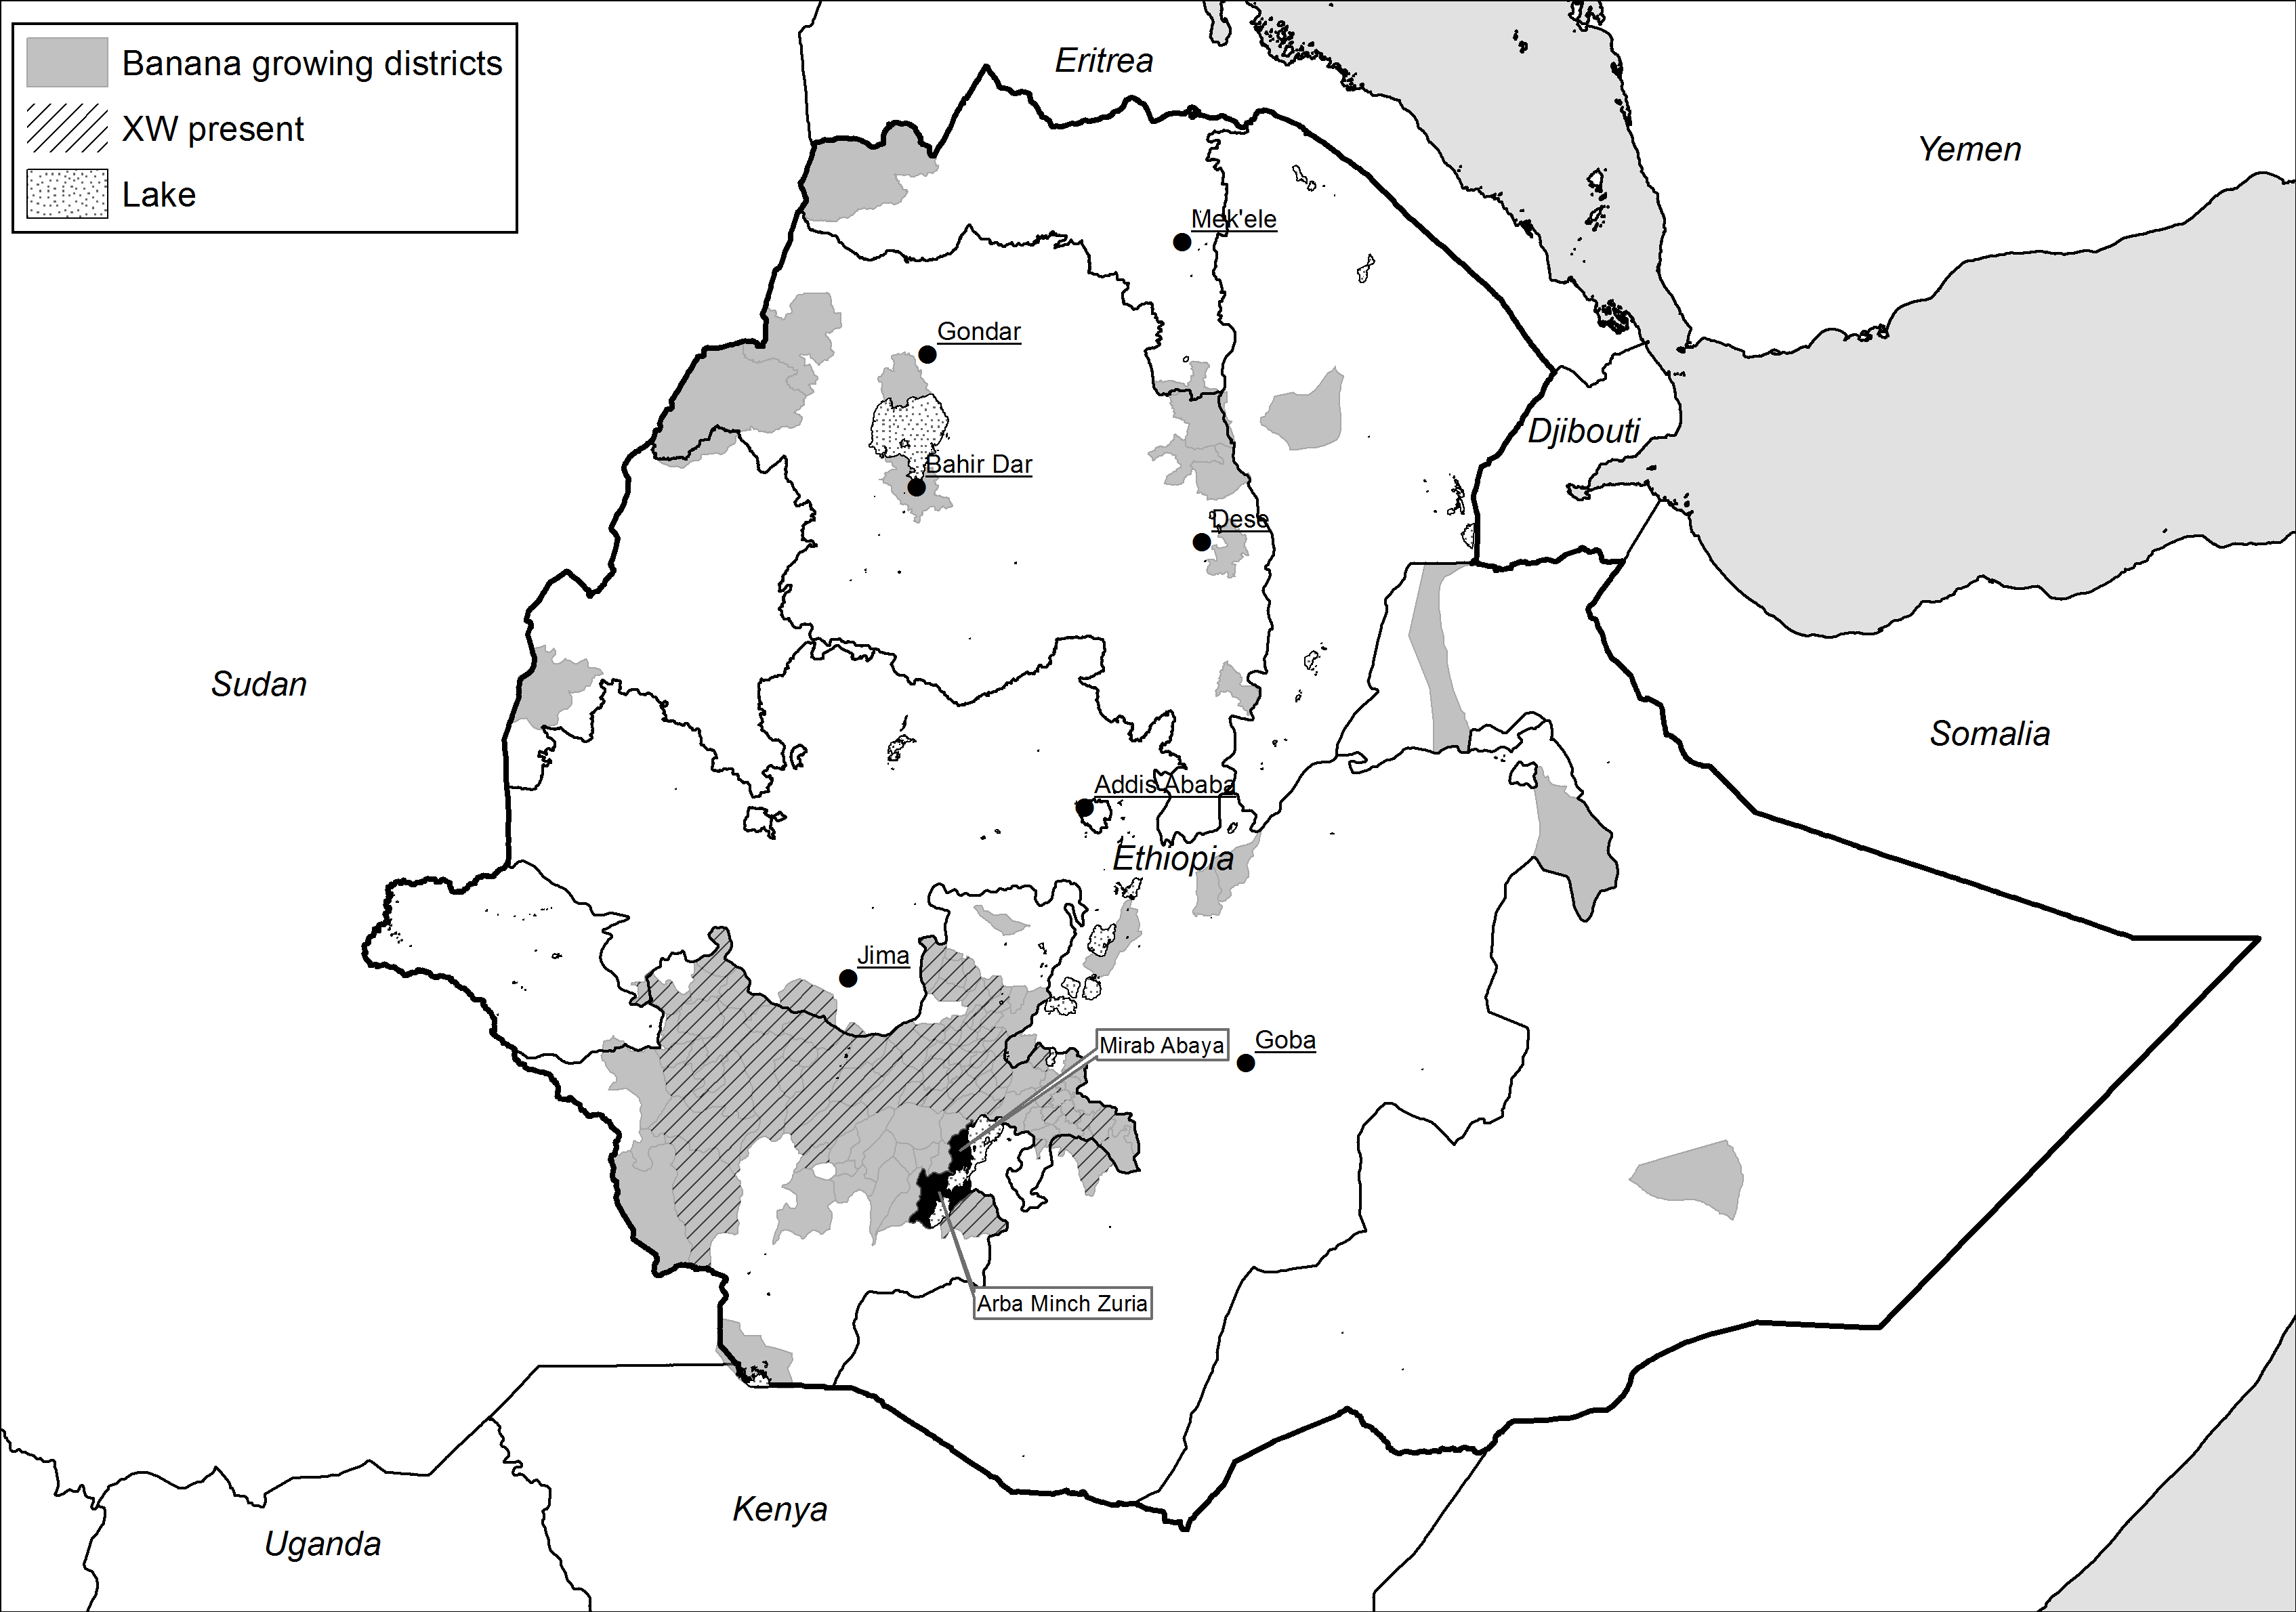 Map of banana and disease distribution in Ethiopia